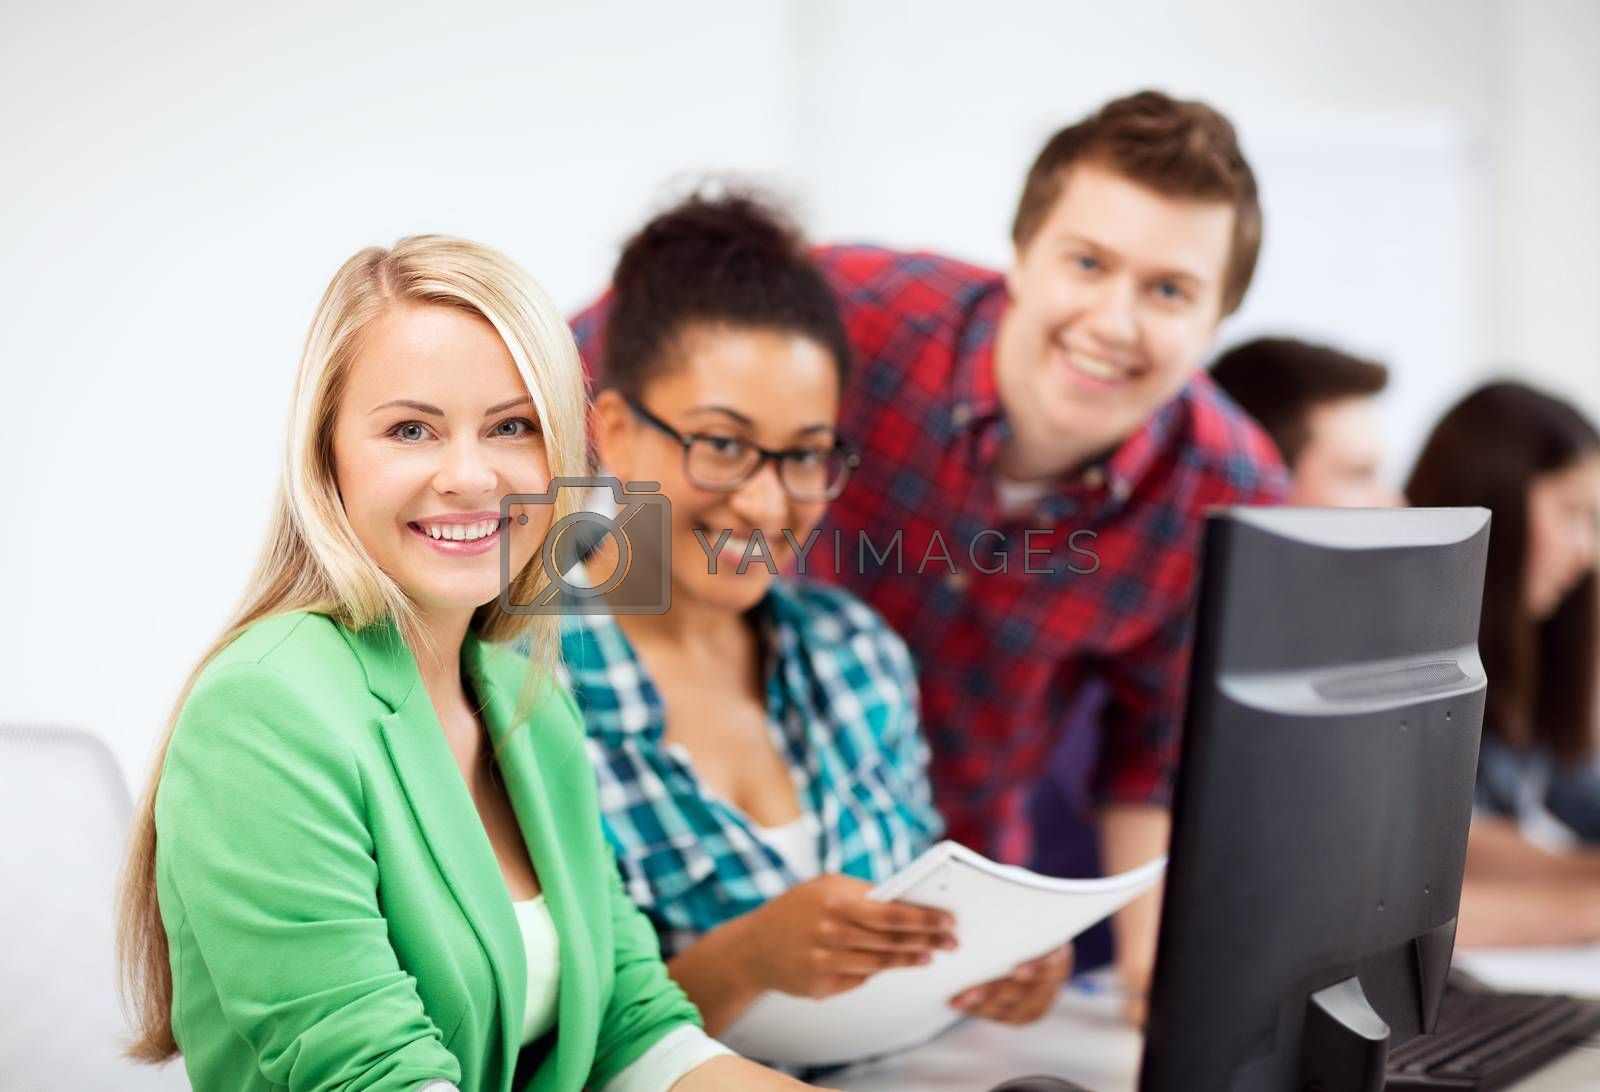 education, technology and internet - students with computer studying at school